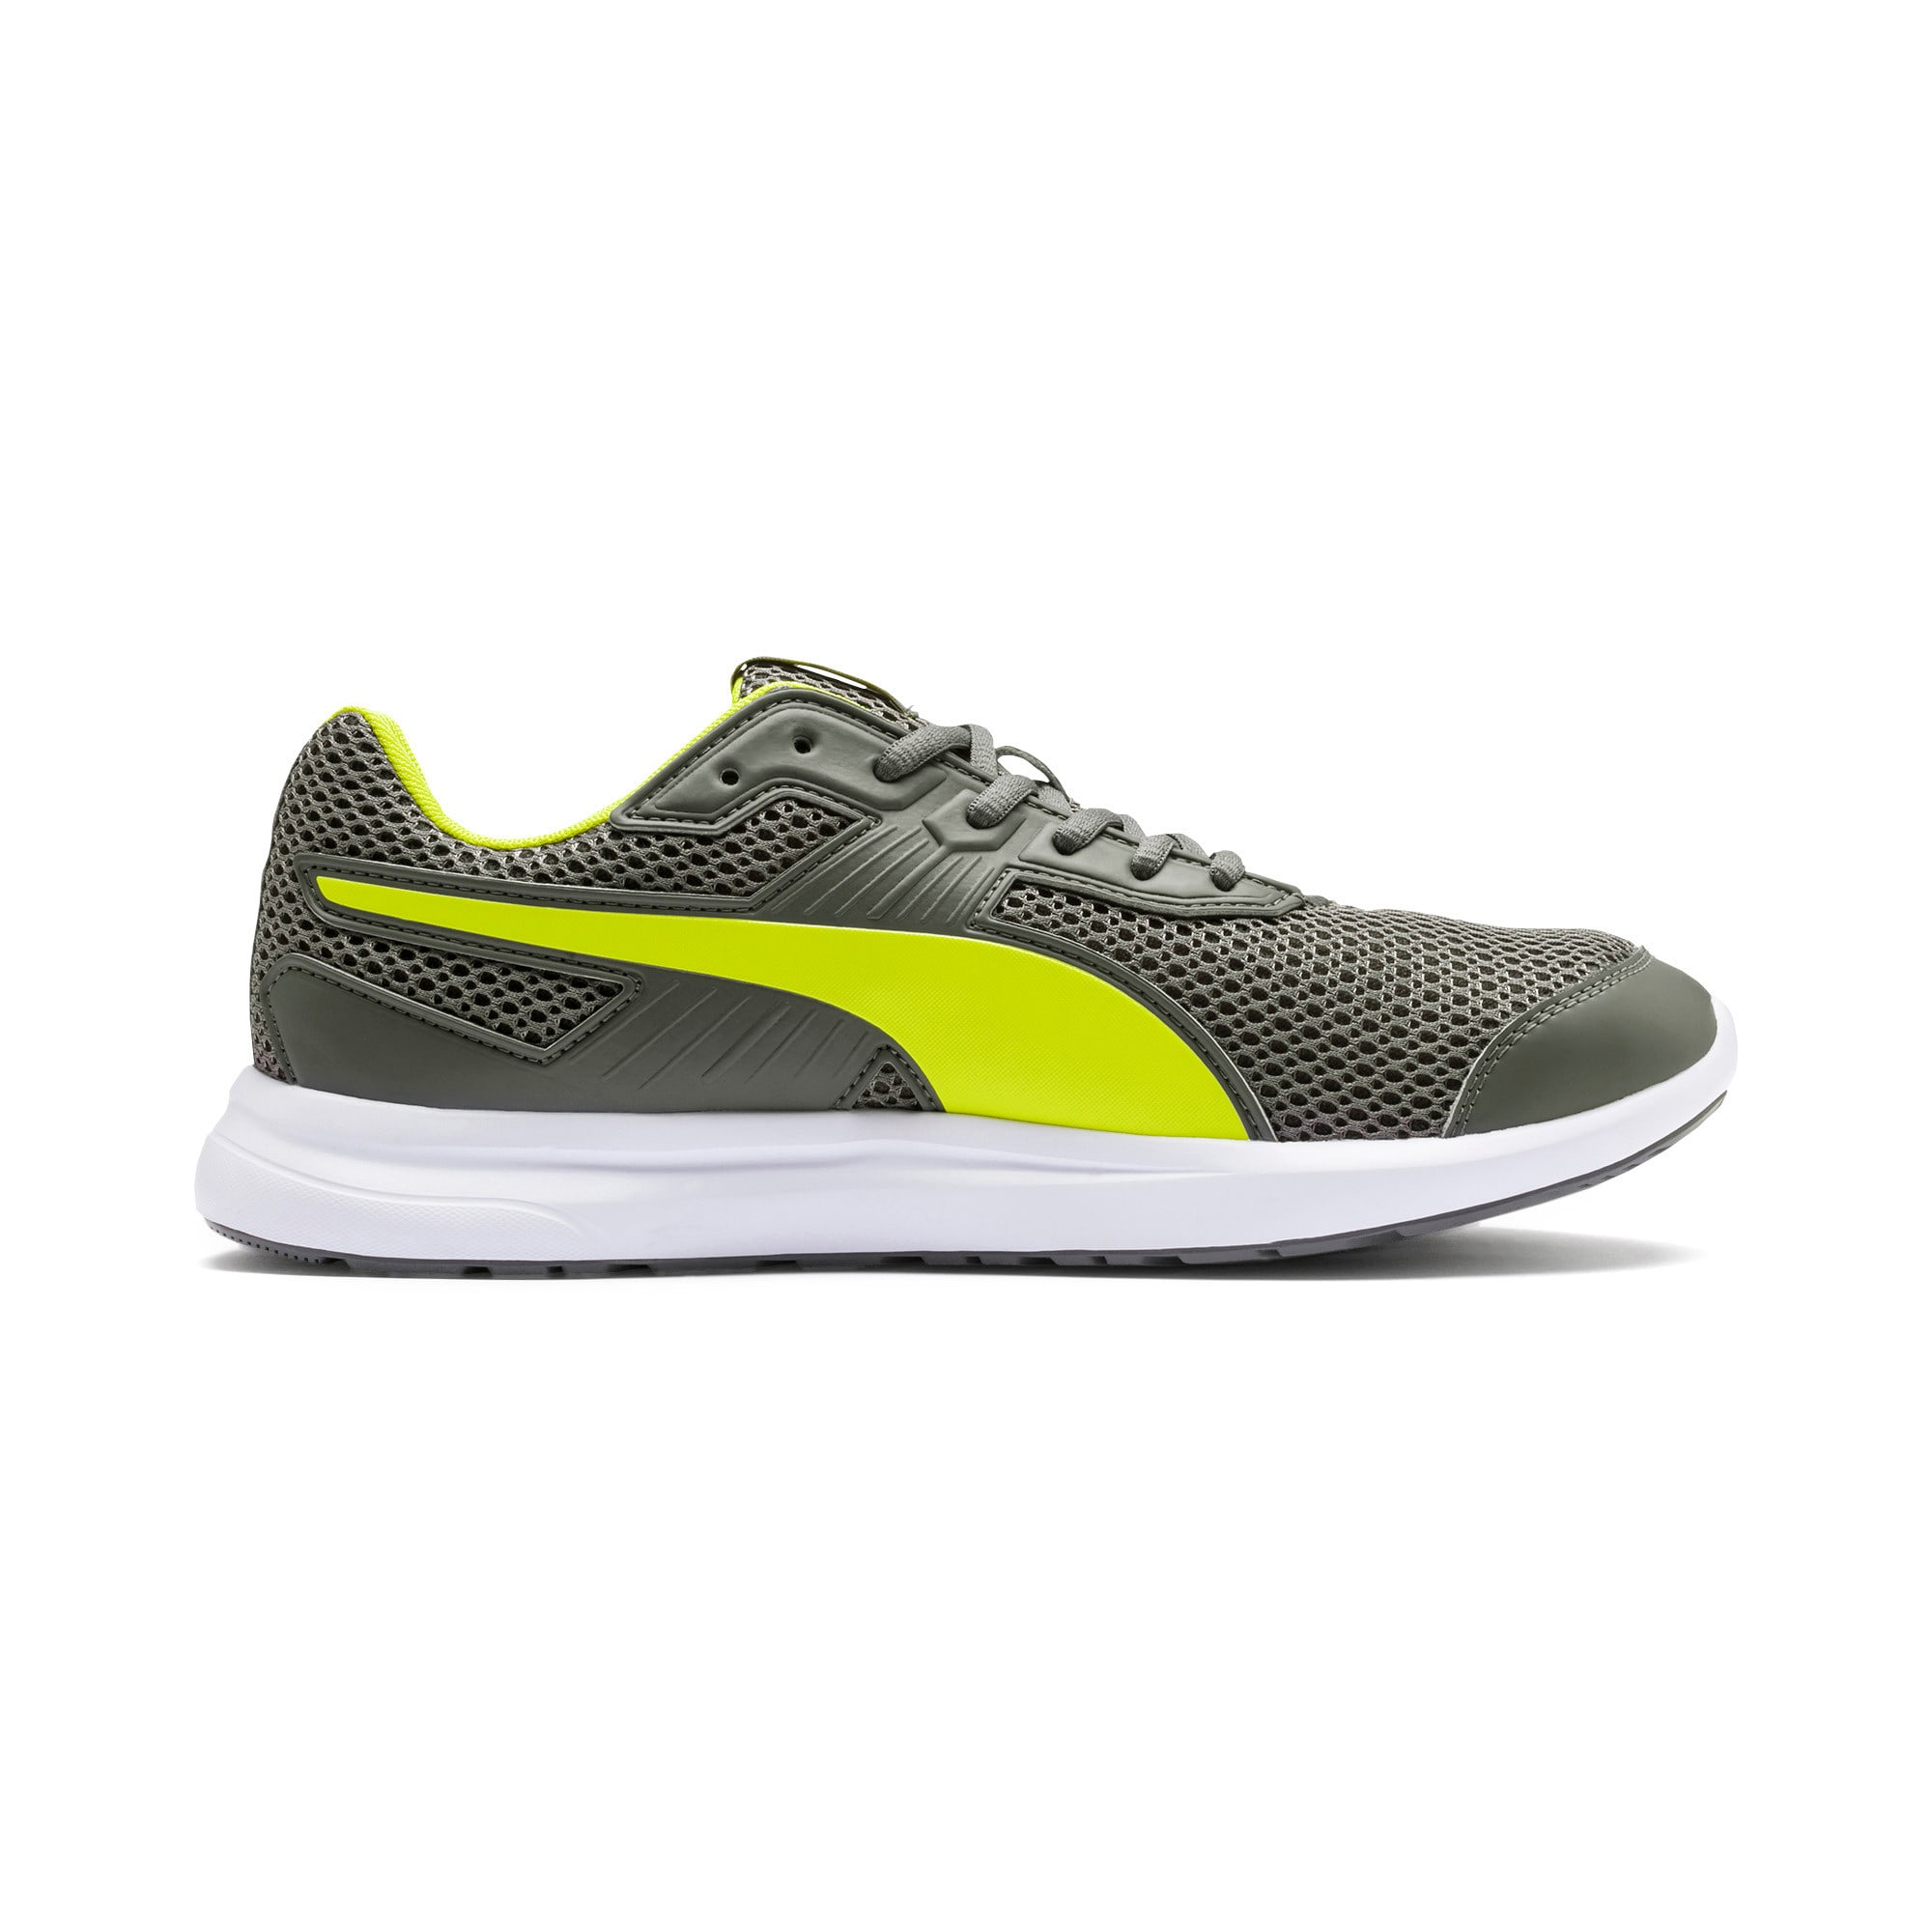 Thumbnail 5 of Escaper Training Shoes, CASTLEROCK-Nrgy Yellow-White, medium-IND